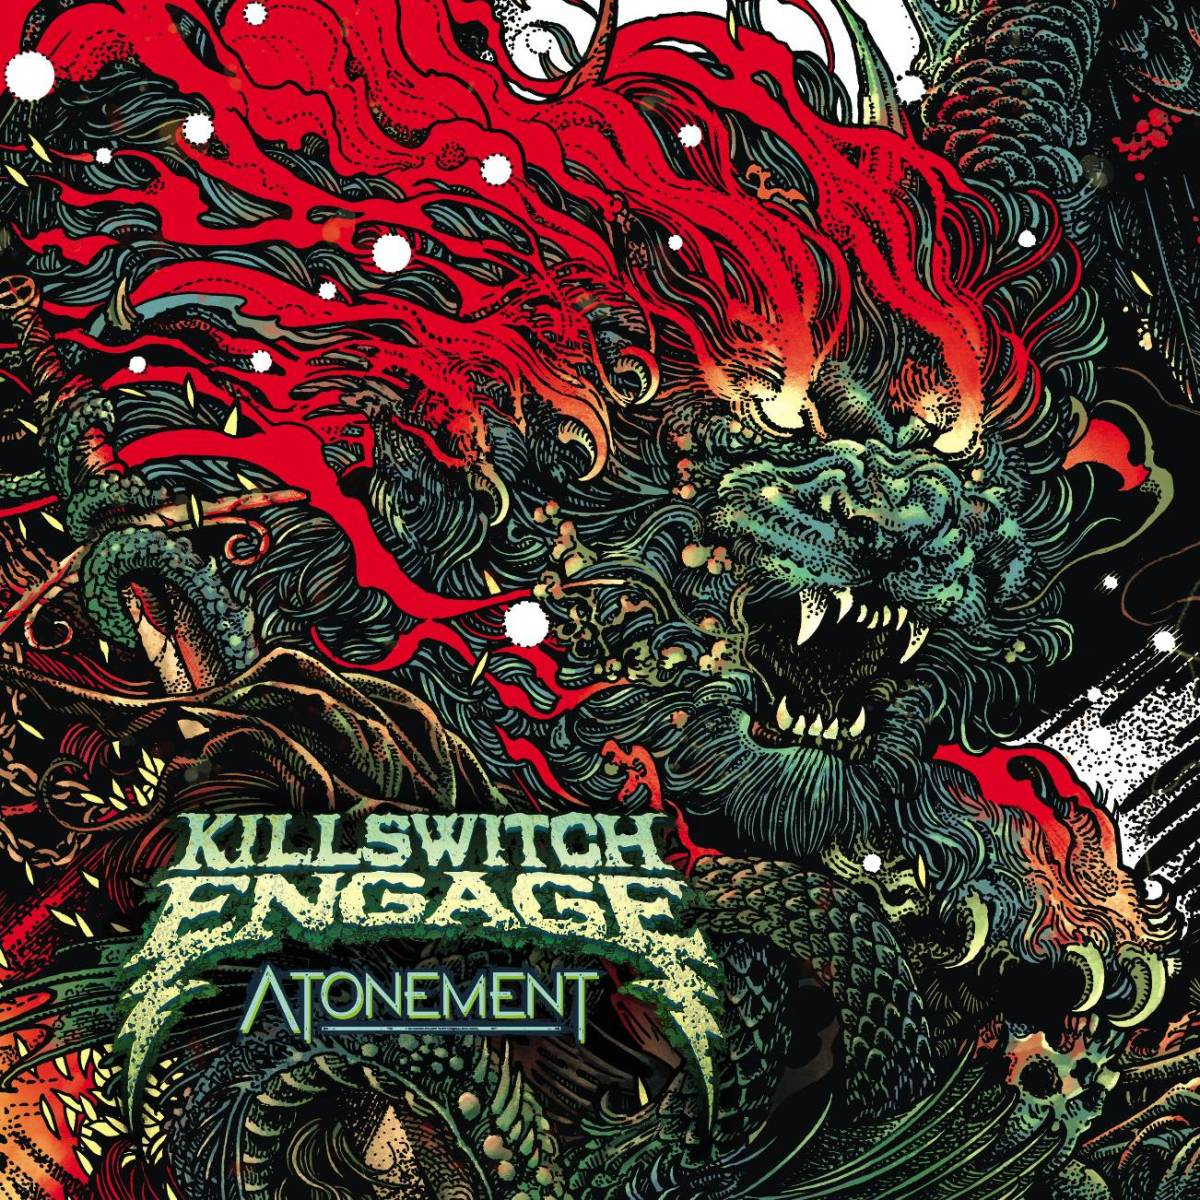 Killswitch Engage – Atonement(Review)